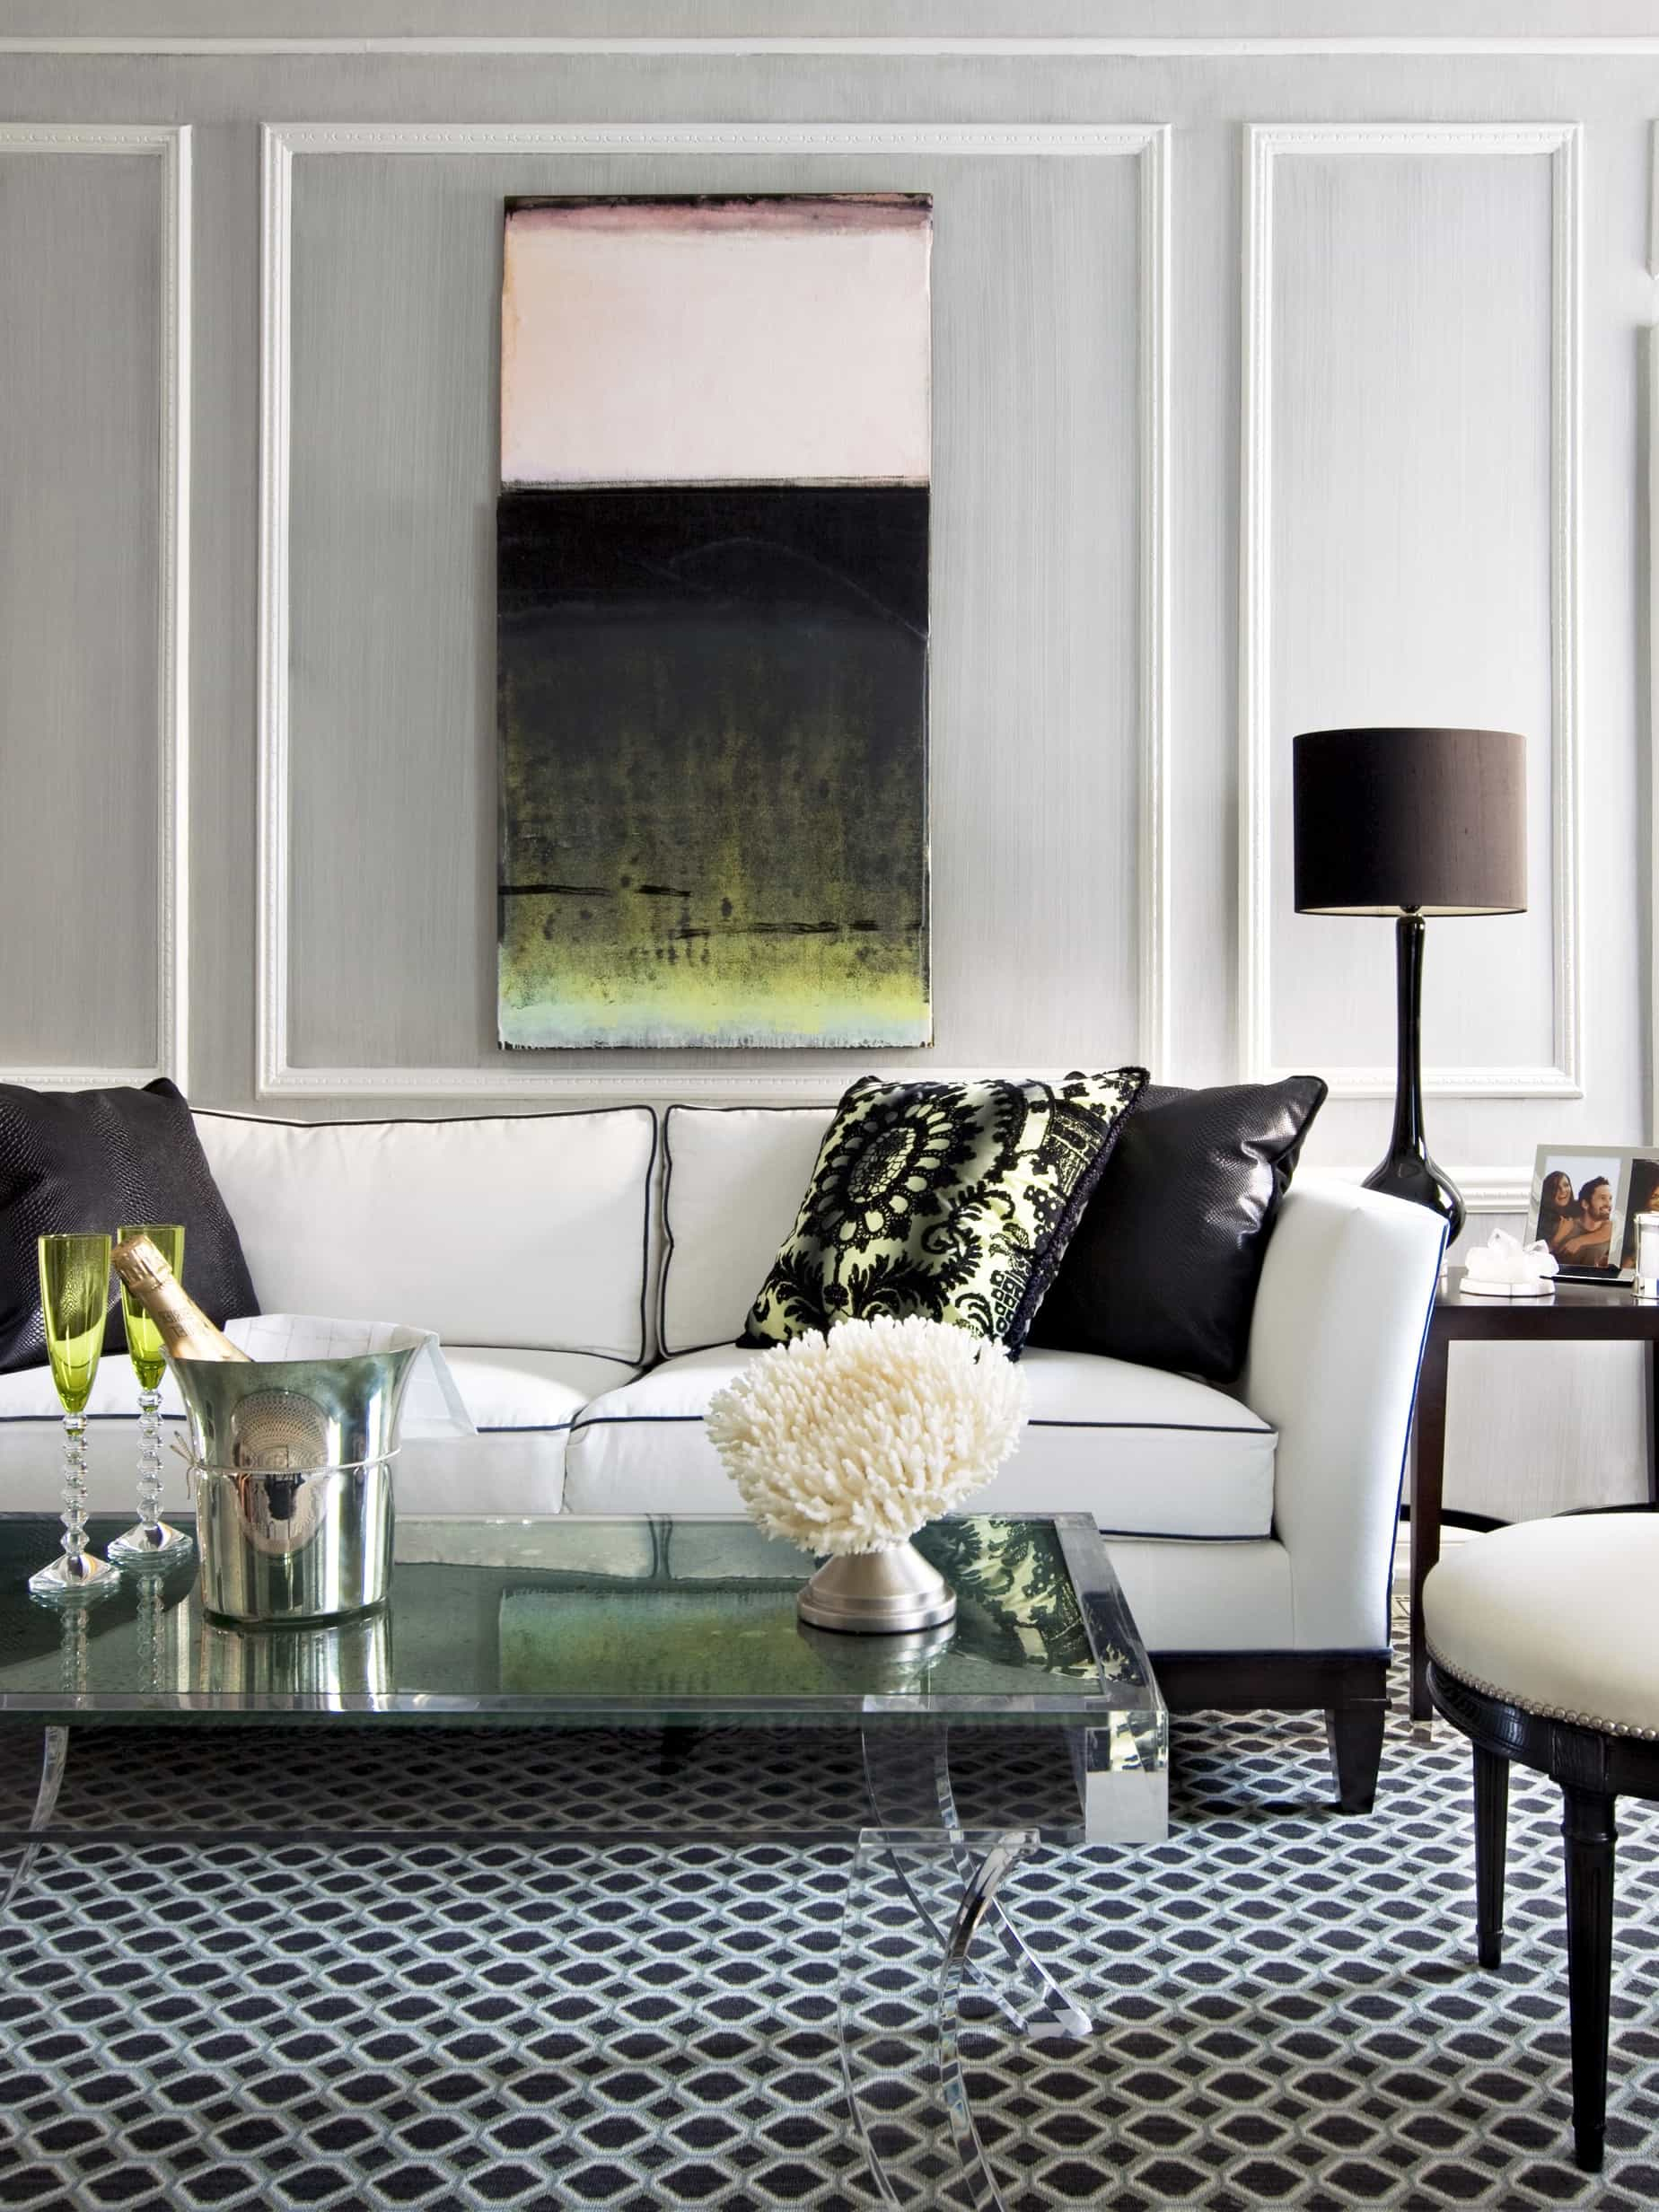 Featured Image of Sophisticated Black And White Living Room Mixes Hollywood Glam